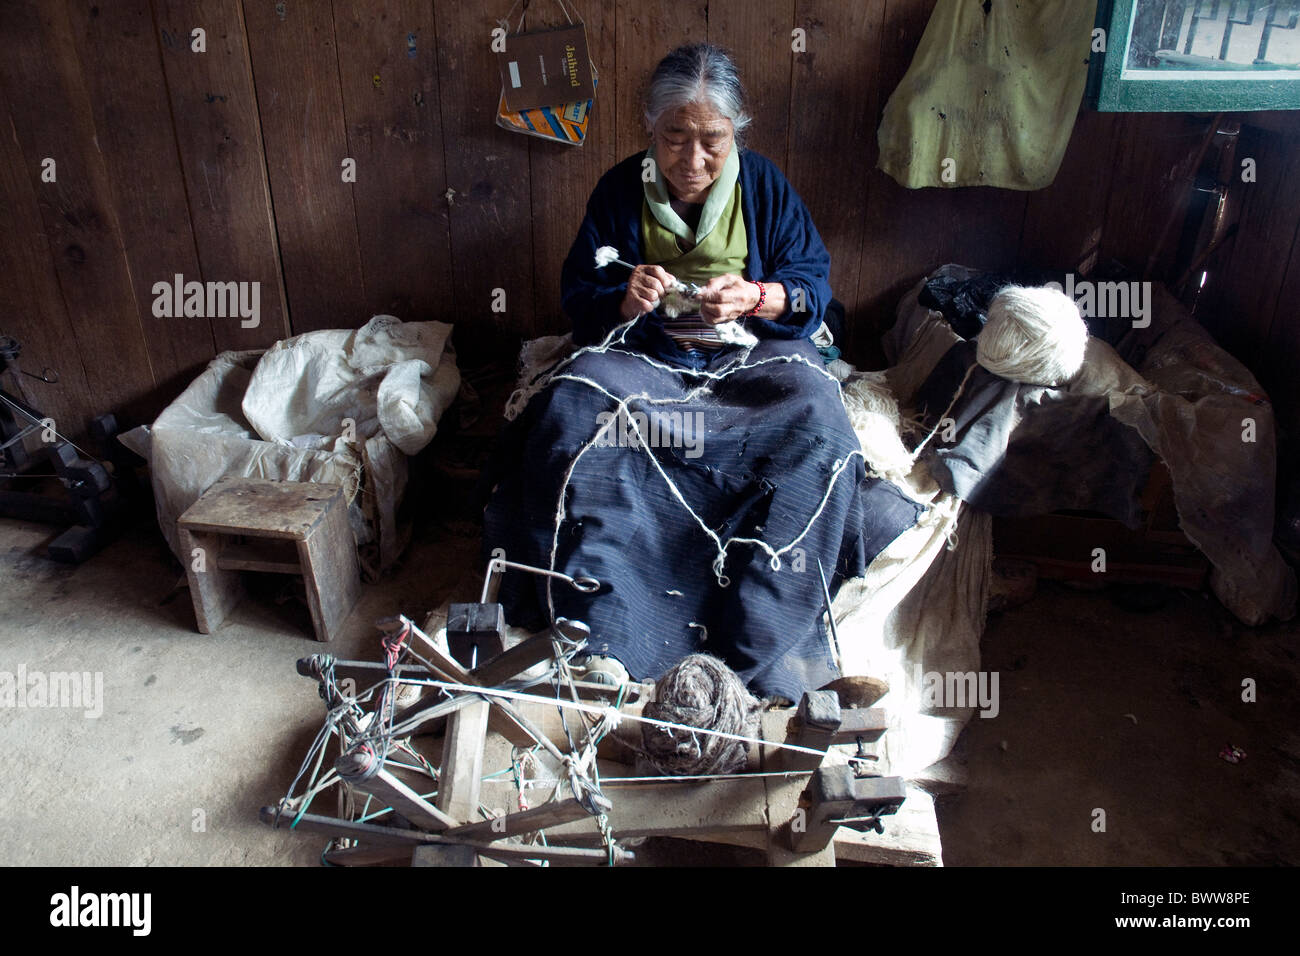 Using mainly sheep's wool, the Tibetan Refugee Centre in Darjeeling provides paid work for Tibetans who fled China's Stock Photo